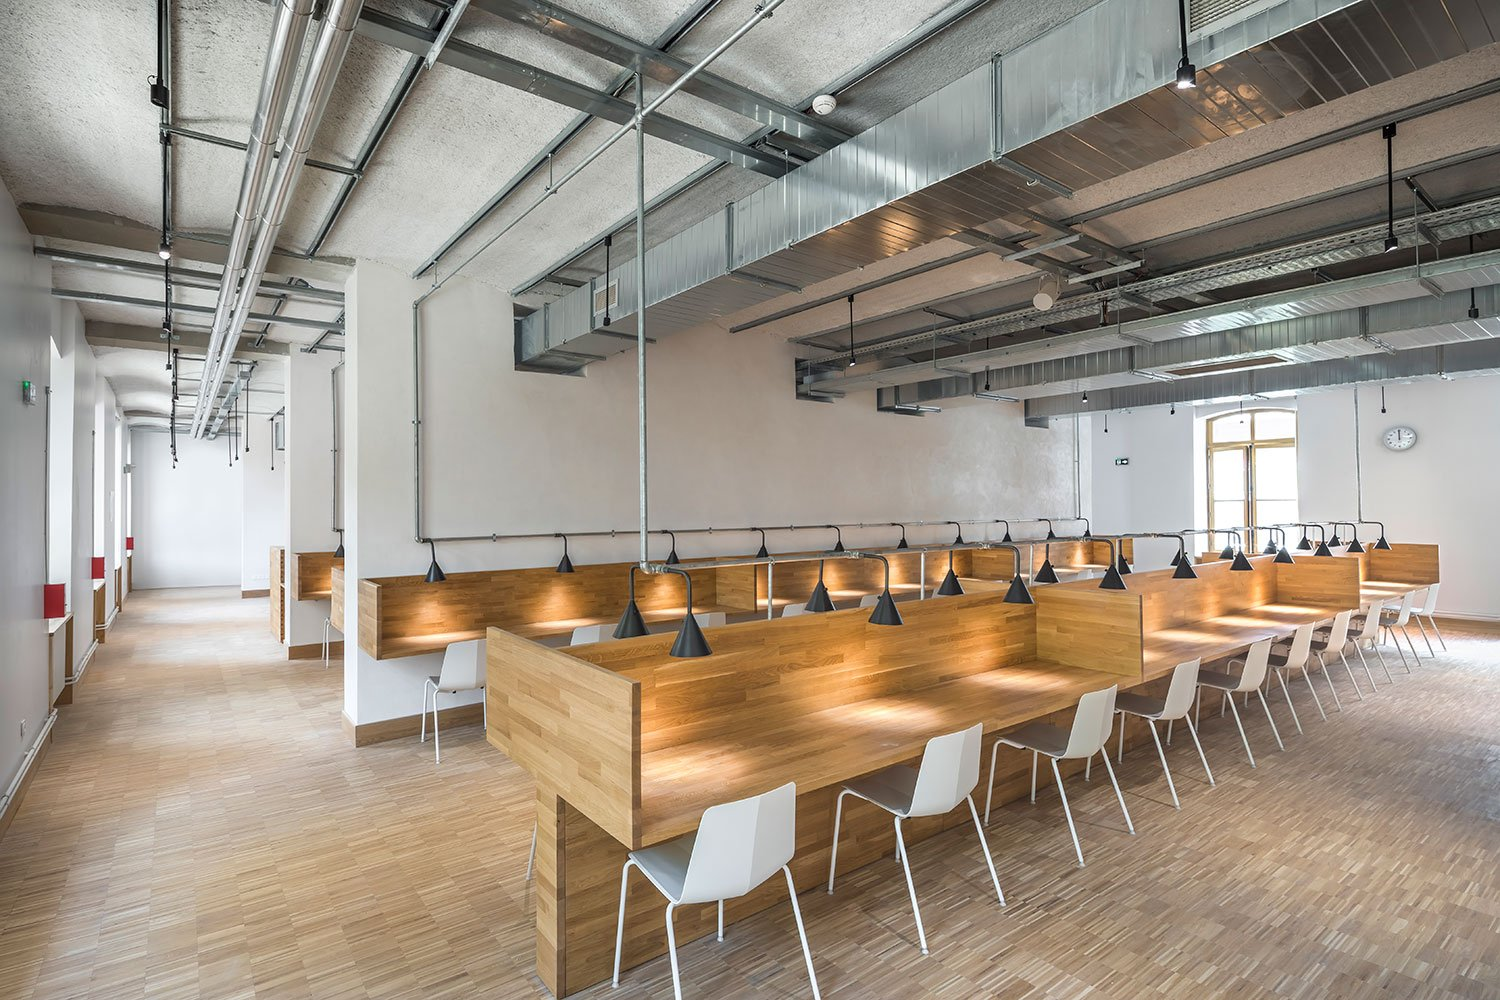 For the interior design of the reading rooms in the library, we have chosen to position the aisles along the façades to allow the light to freely enter the building and thus free up the  view of the succes Sergio Grazia